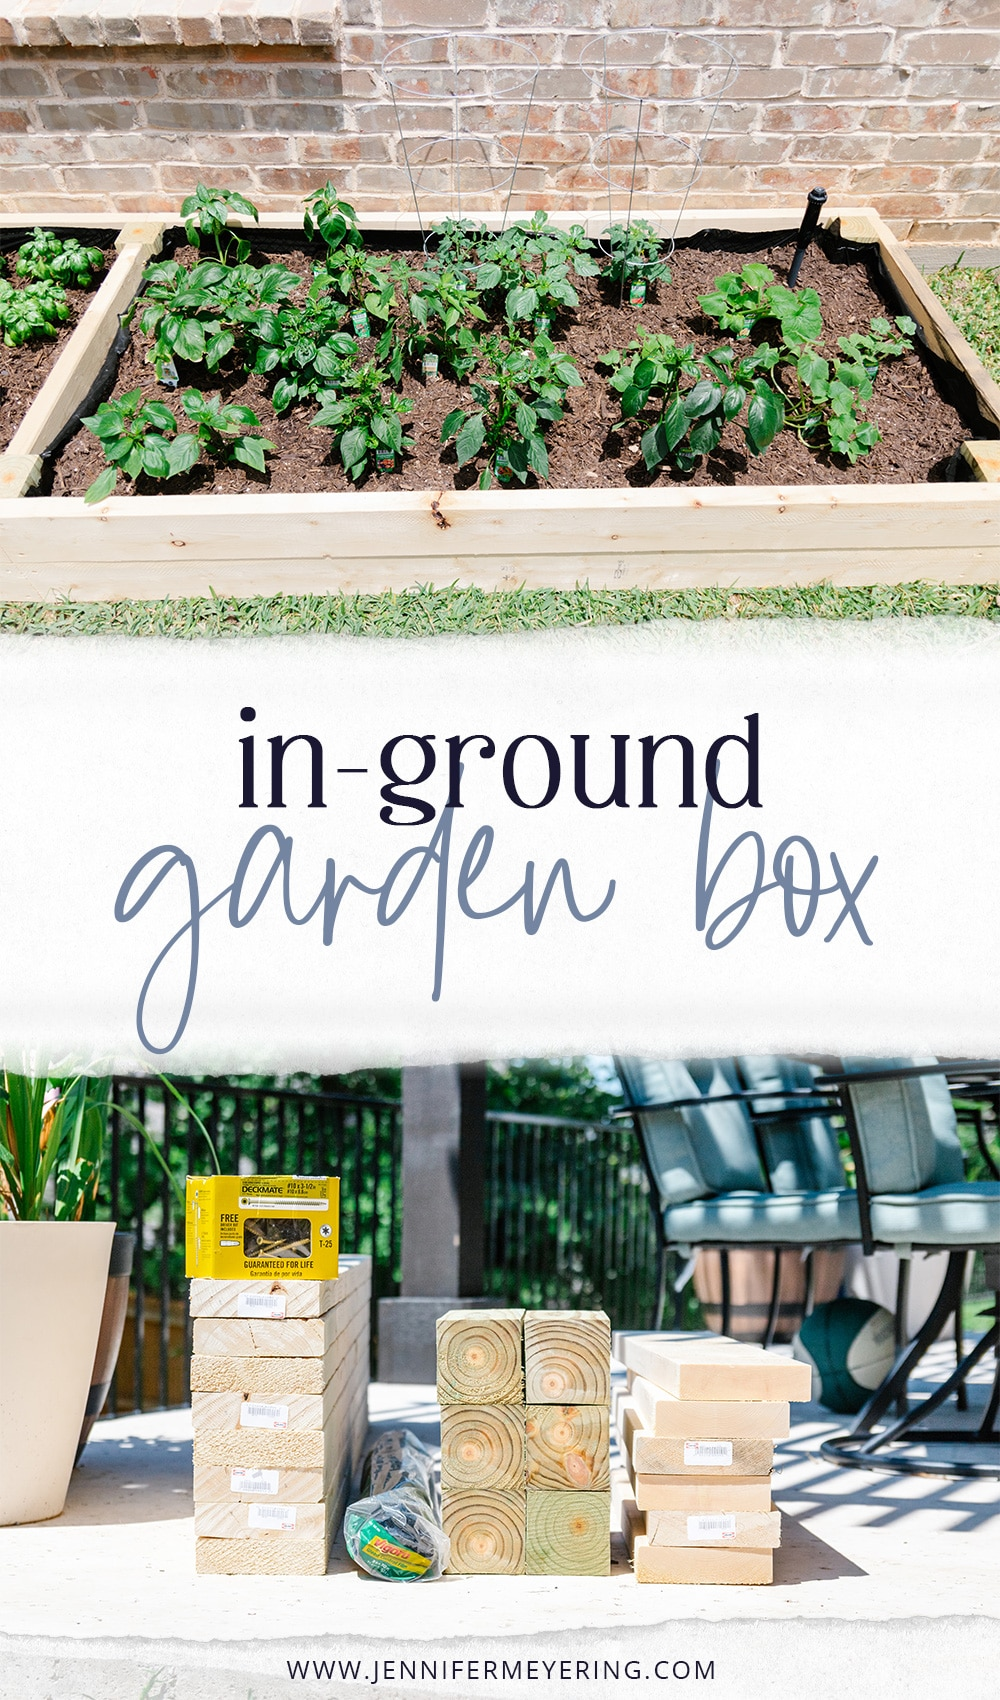 In-Ground Garden Box - JenniferMeyering.com